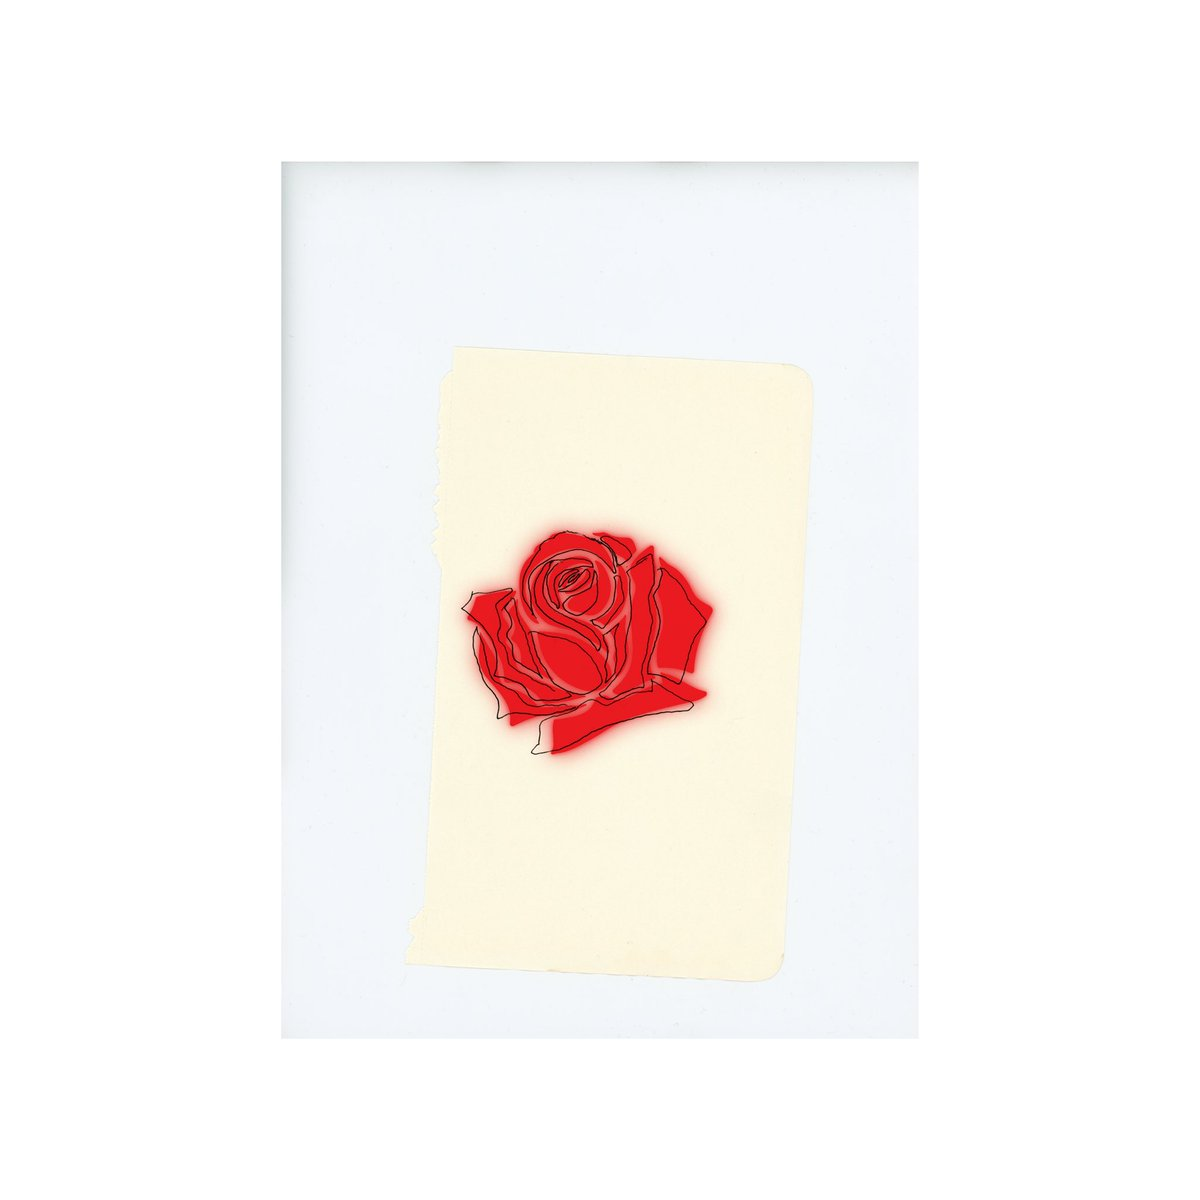 LANY by LANY album cover